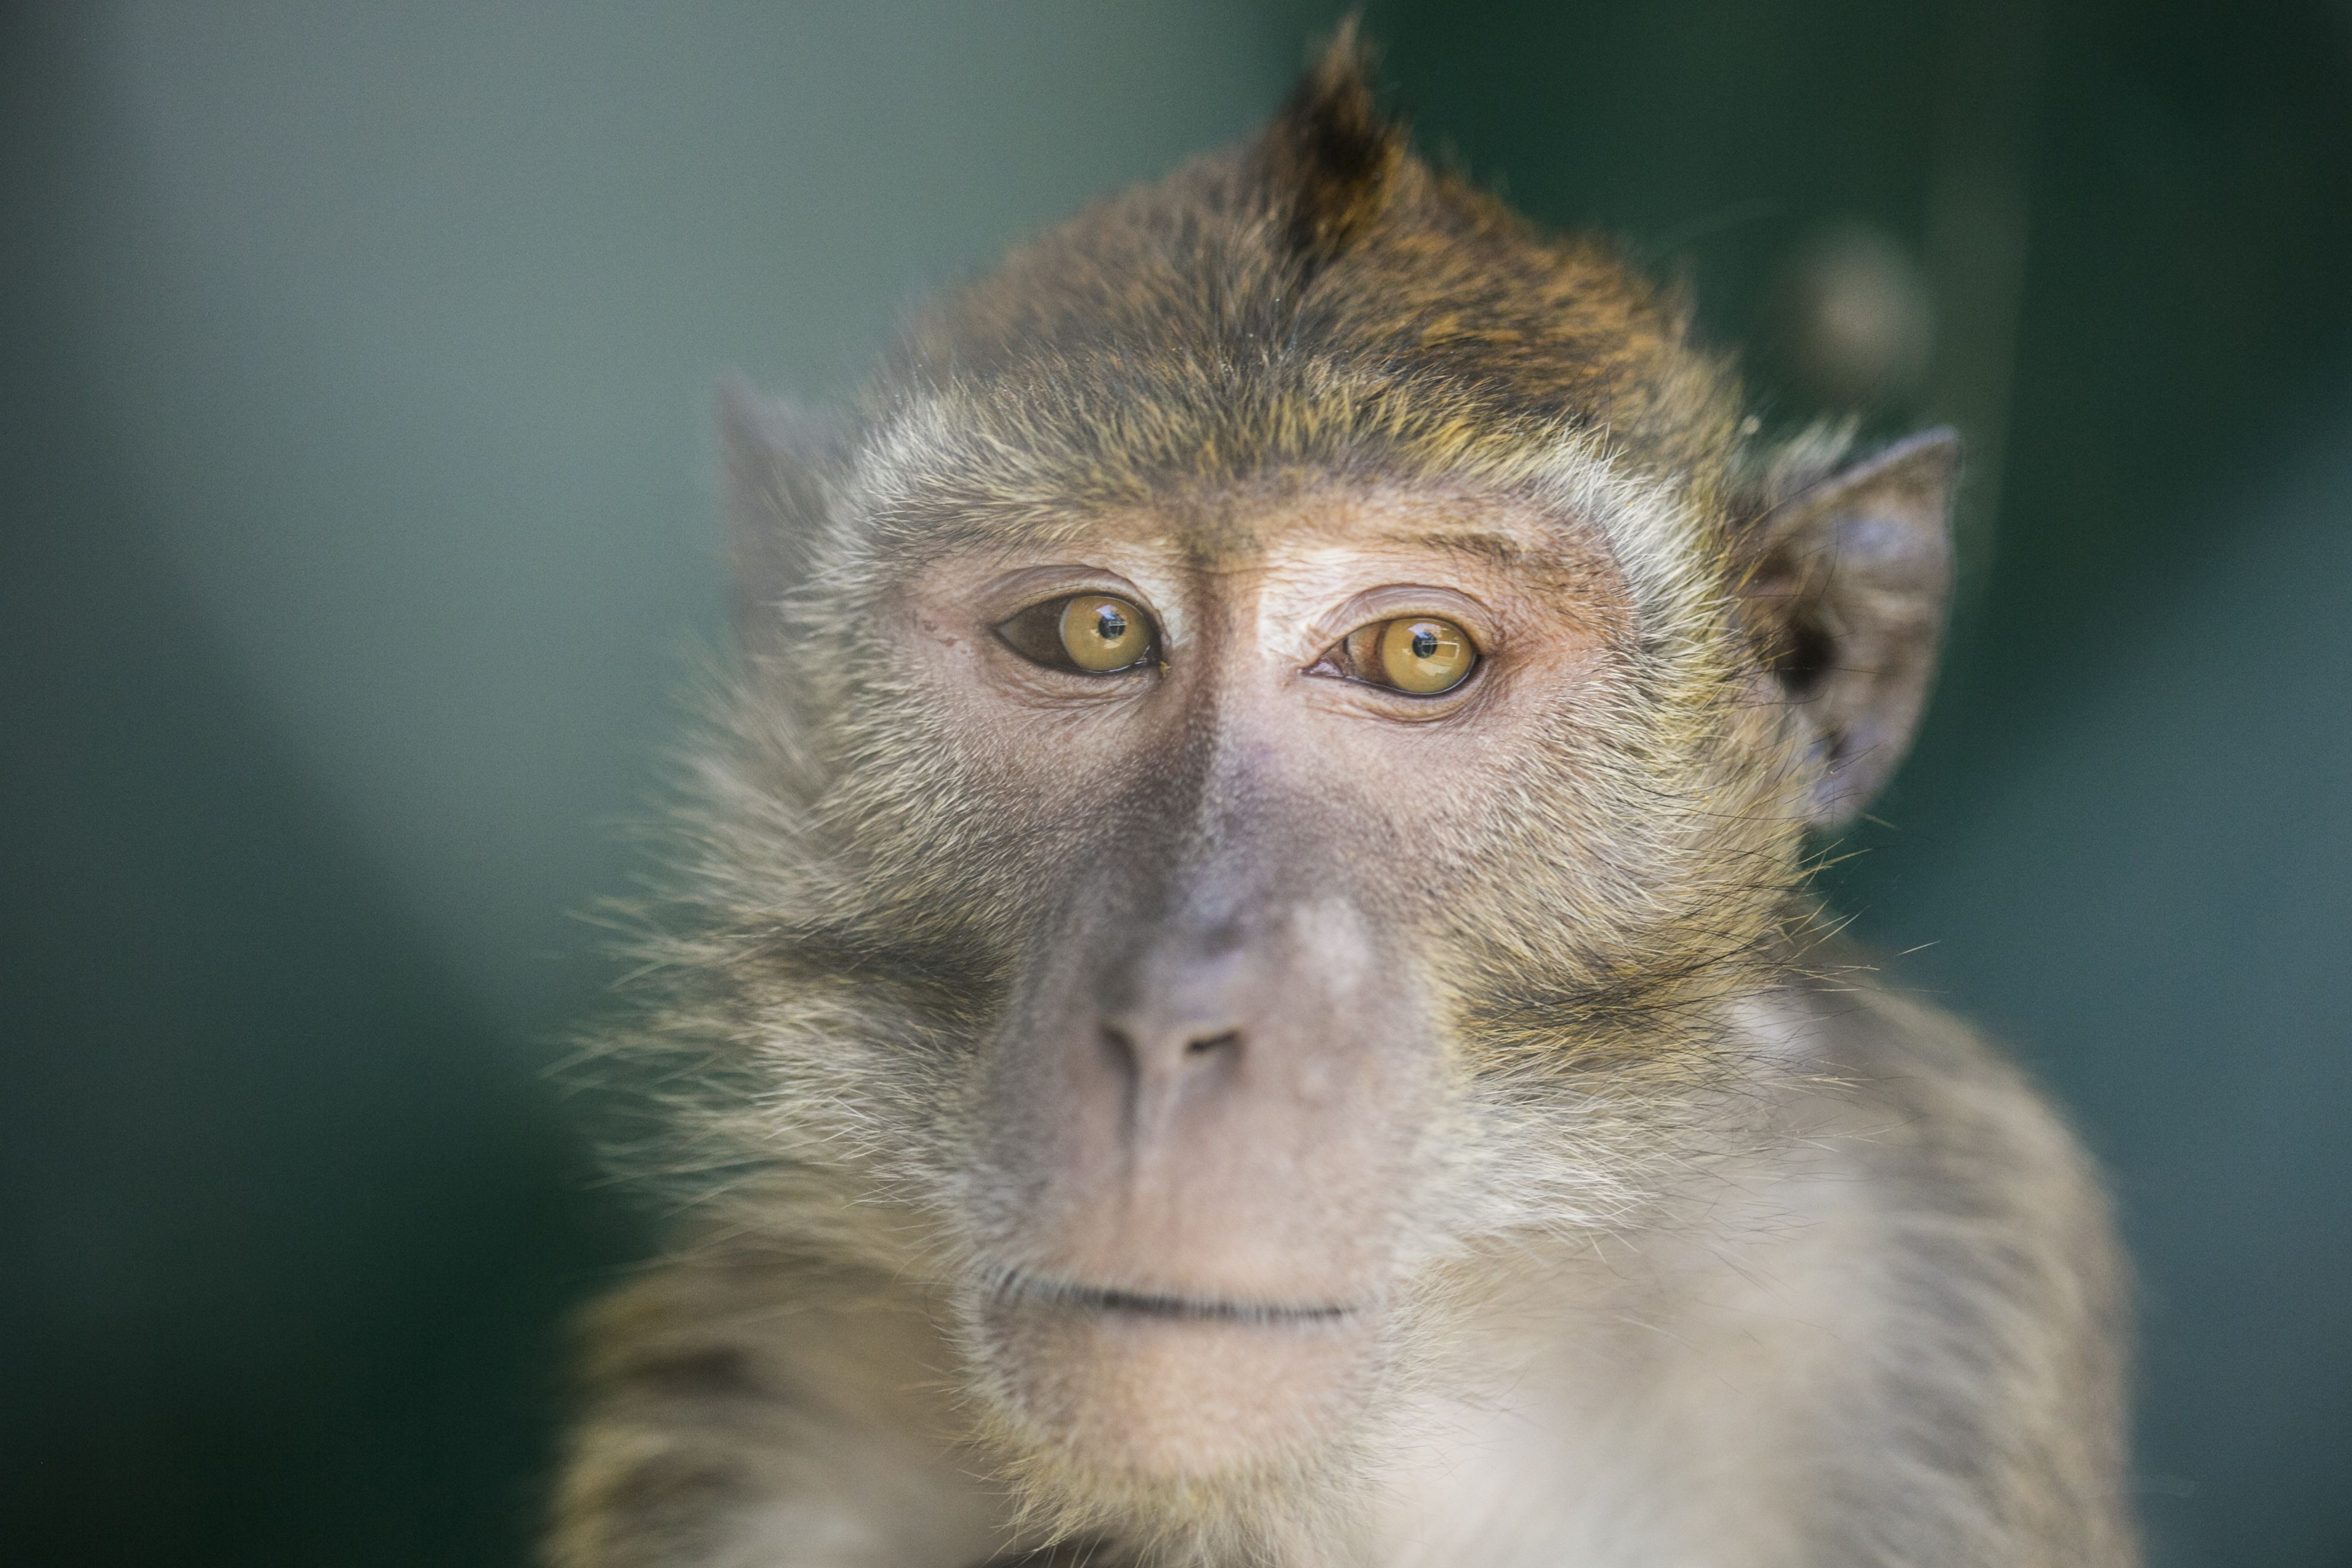 Monkeys used in research in the US